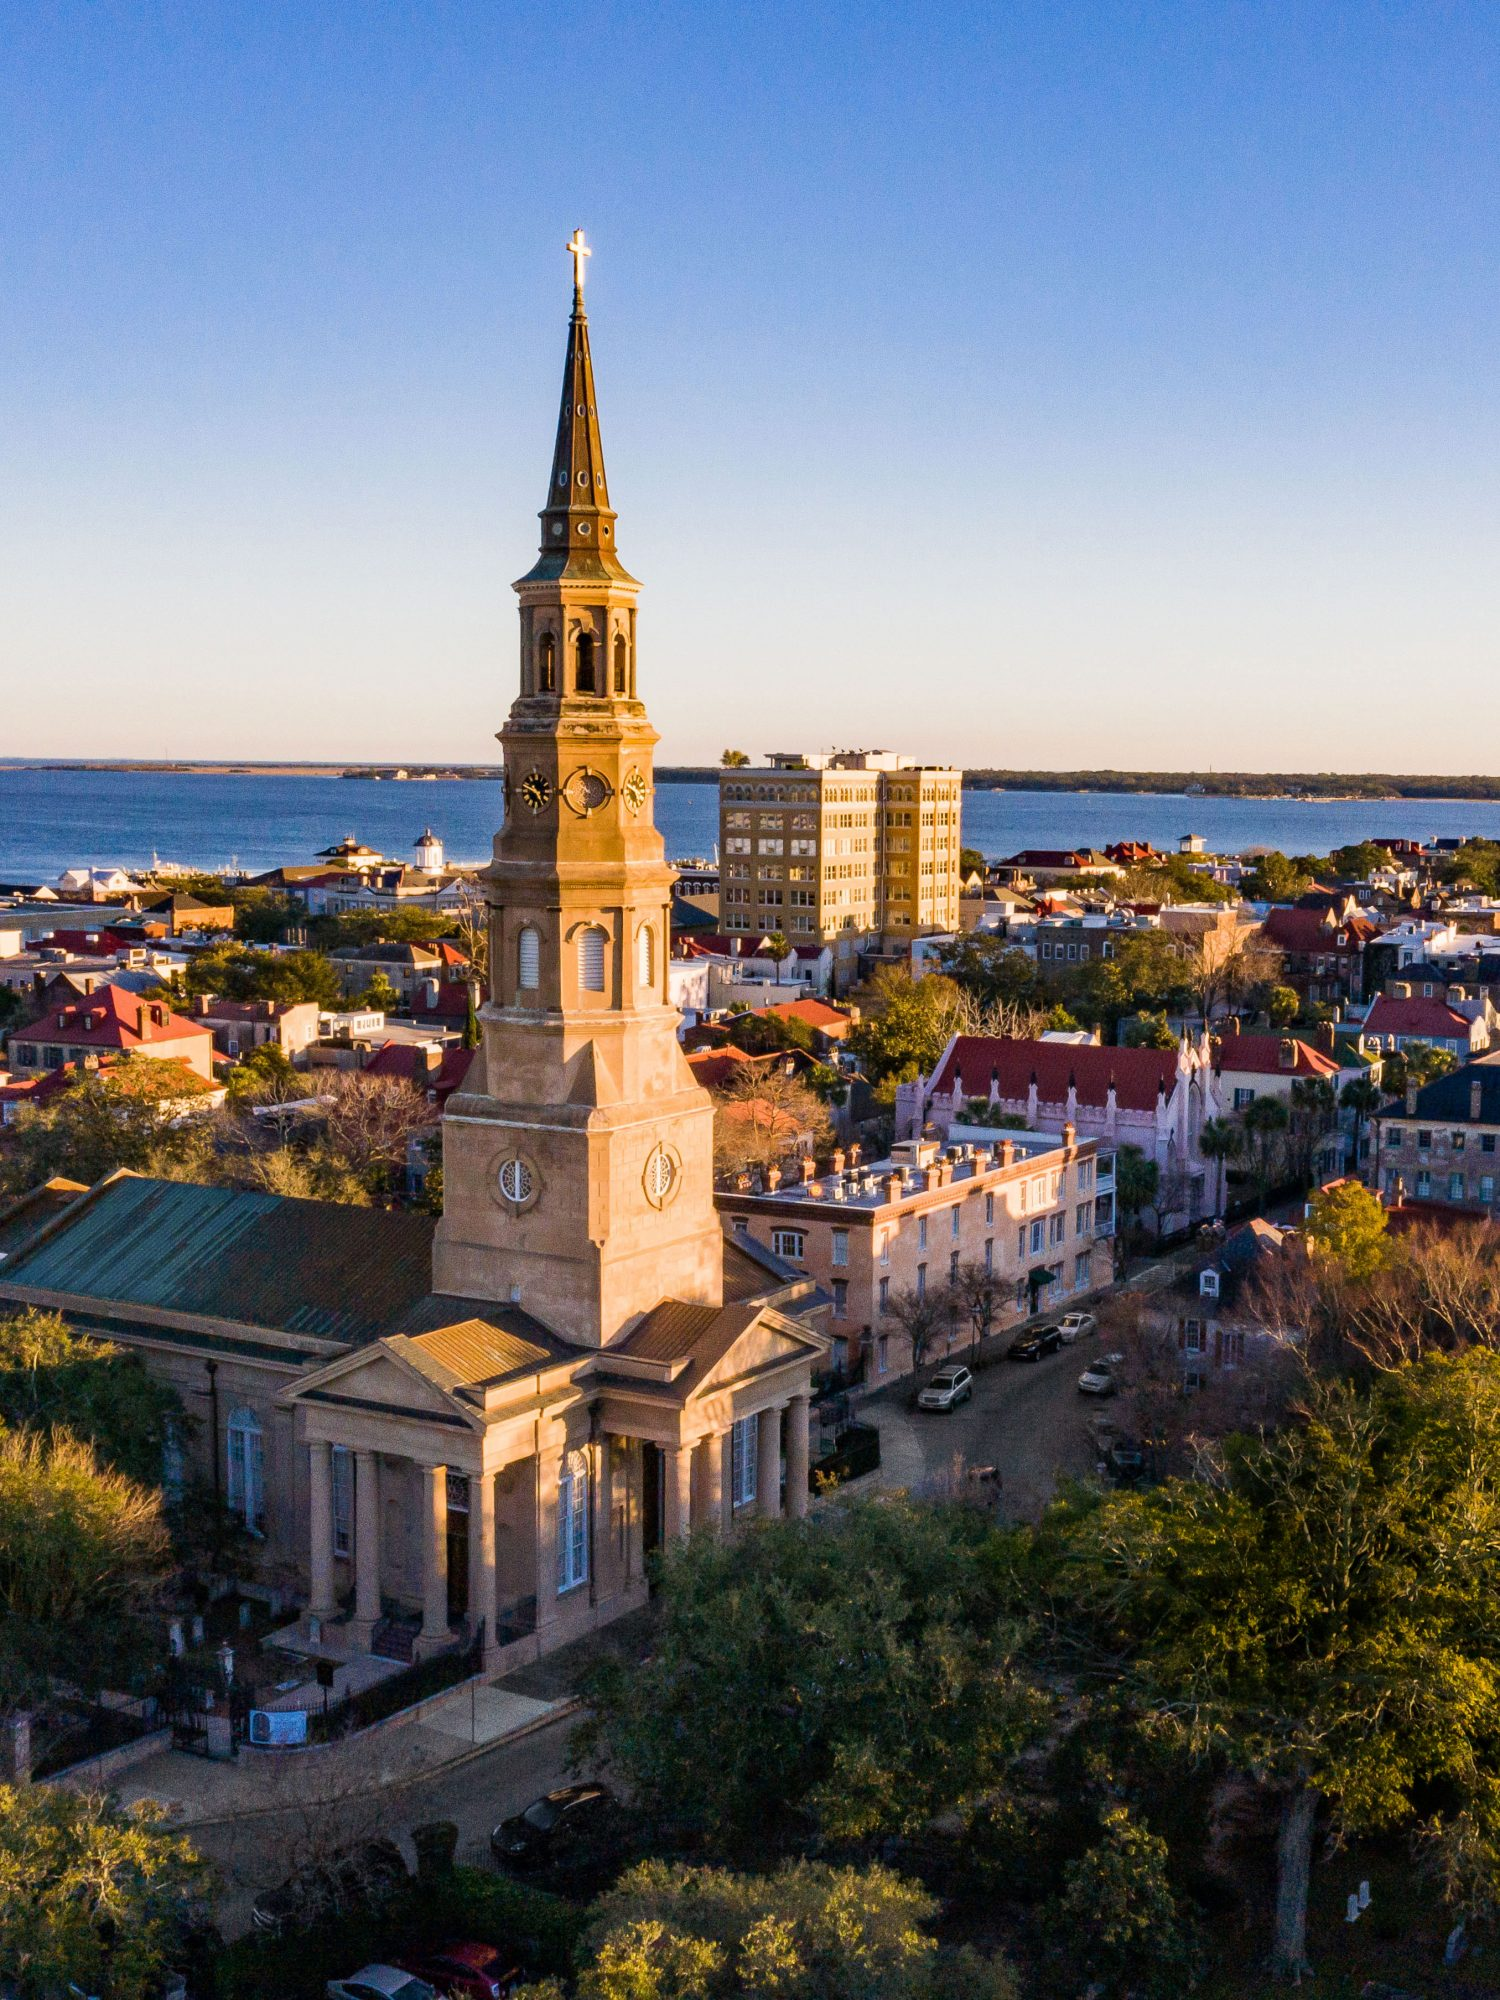 St. Philip's Church in Charleston, SC